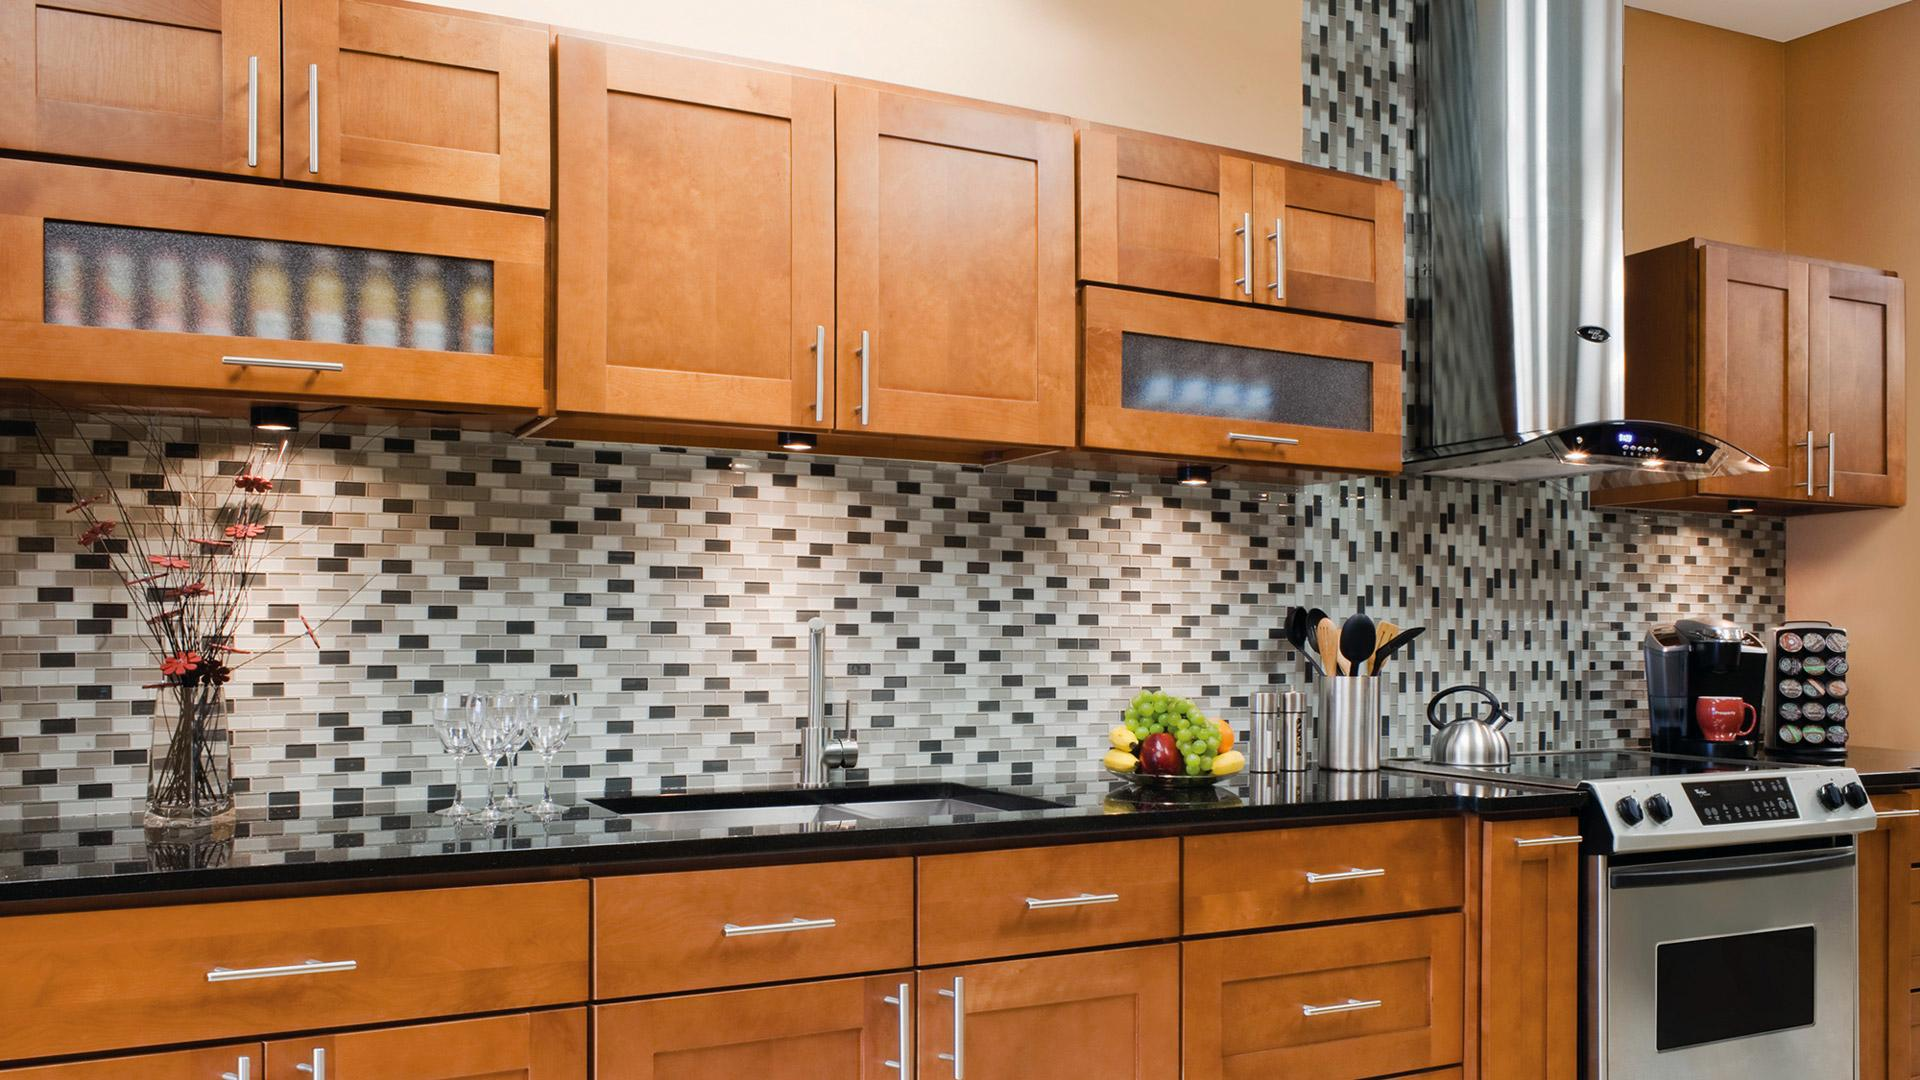 Download Lowes Kitchen Wallpaper Gallery